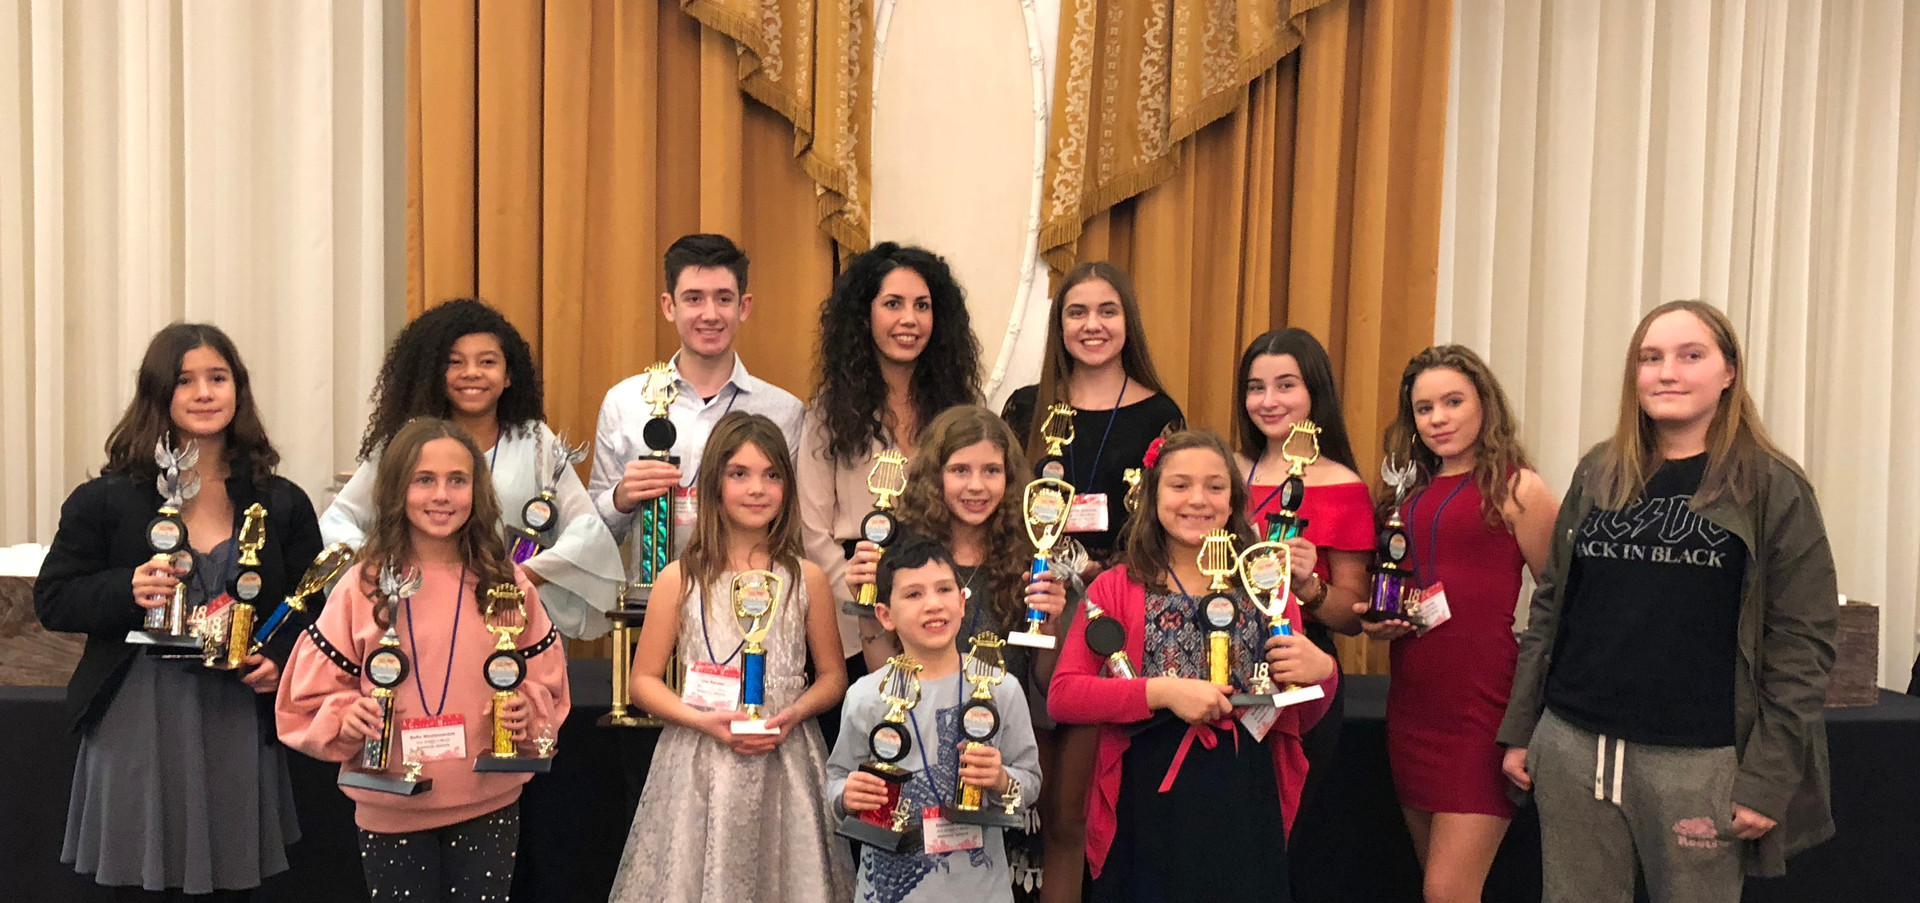 American Guild of Music Competition 2018